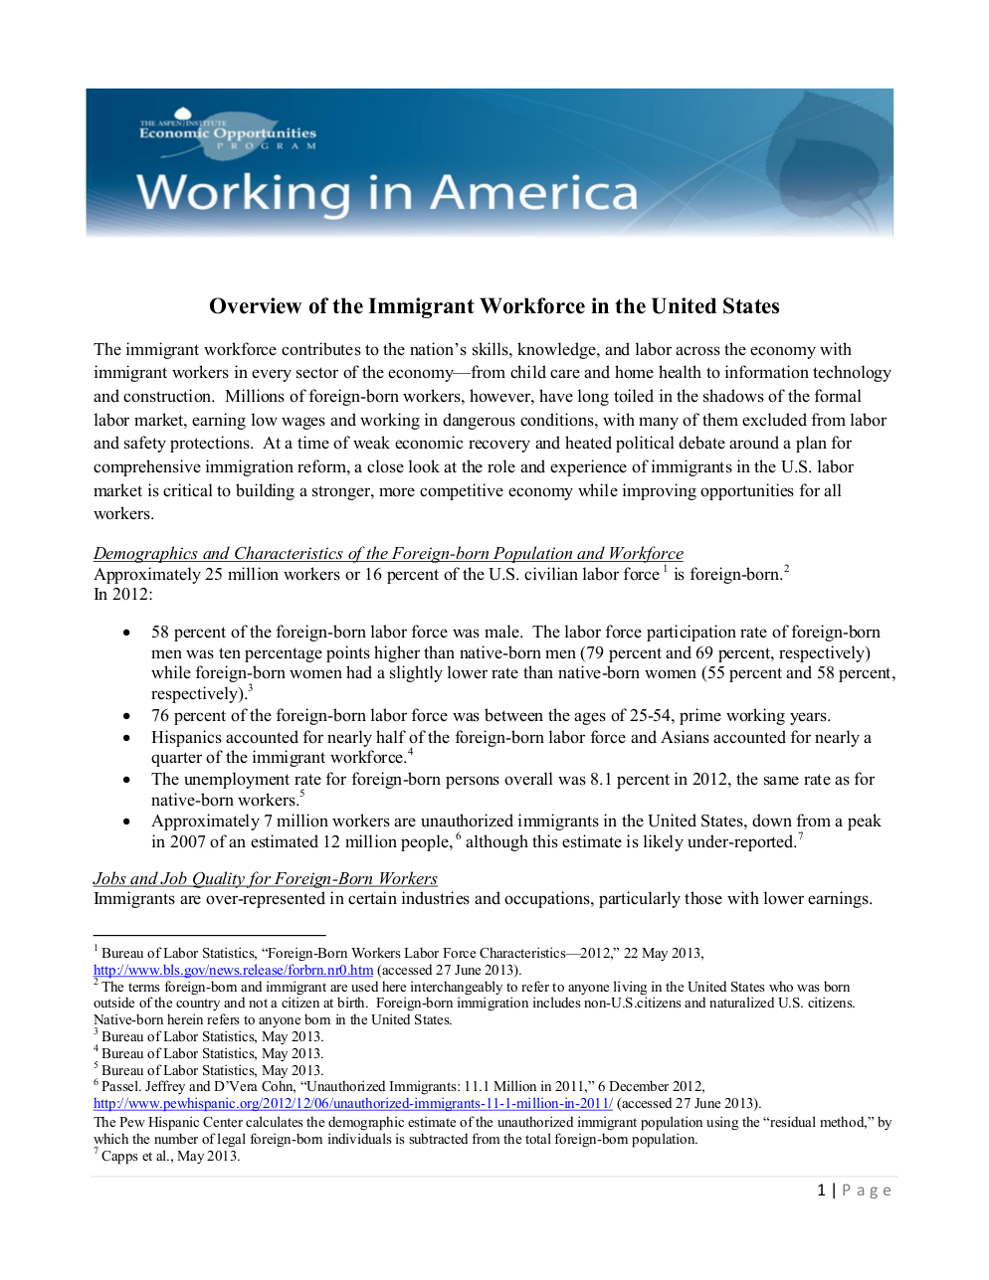 Fact Sheet on Foreign-Born Workforce